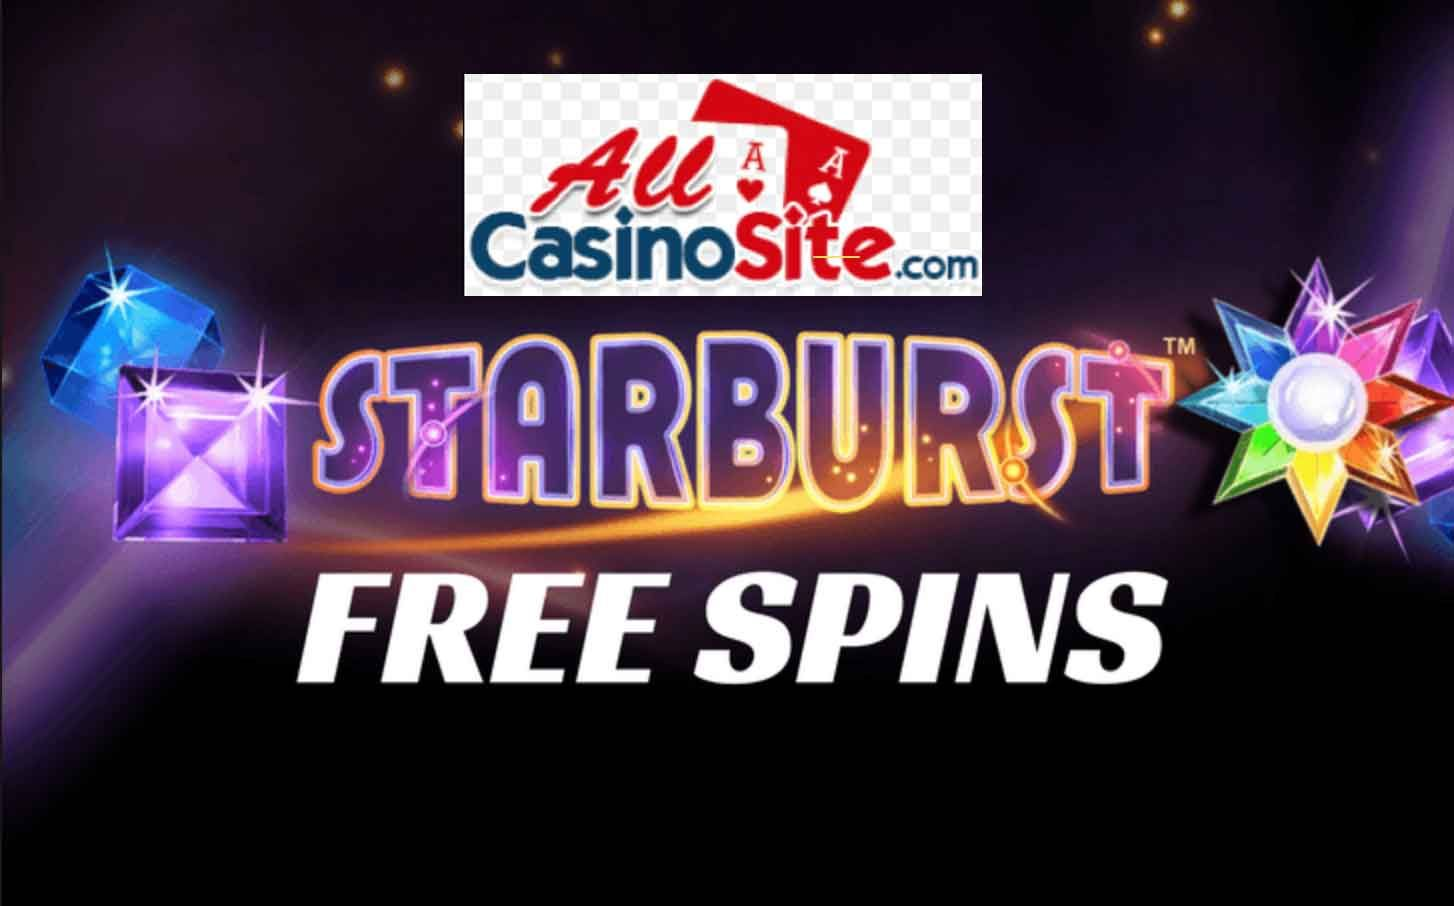 Present best slot & casino sites with free spins on every